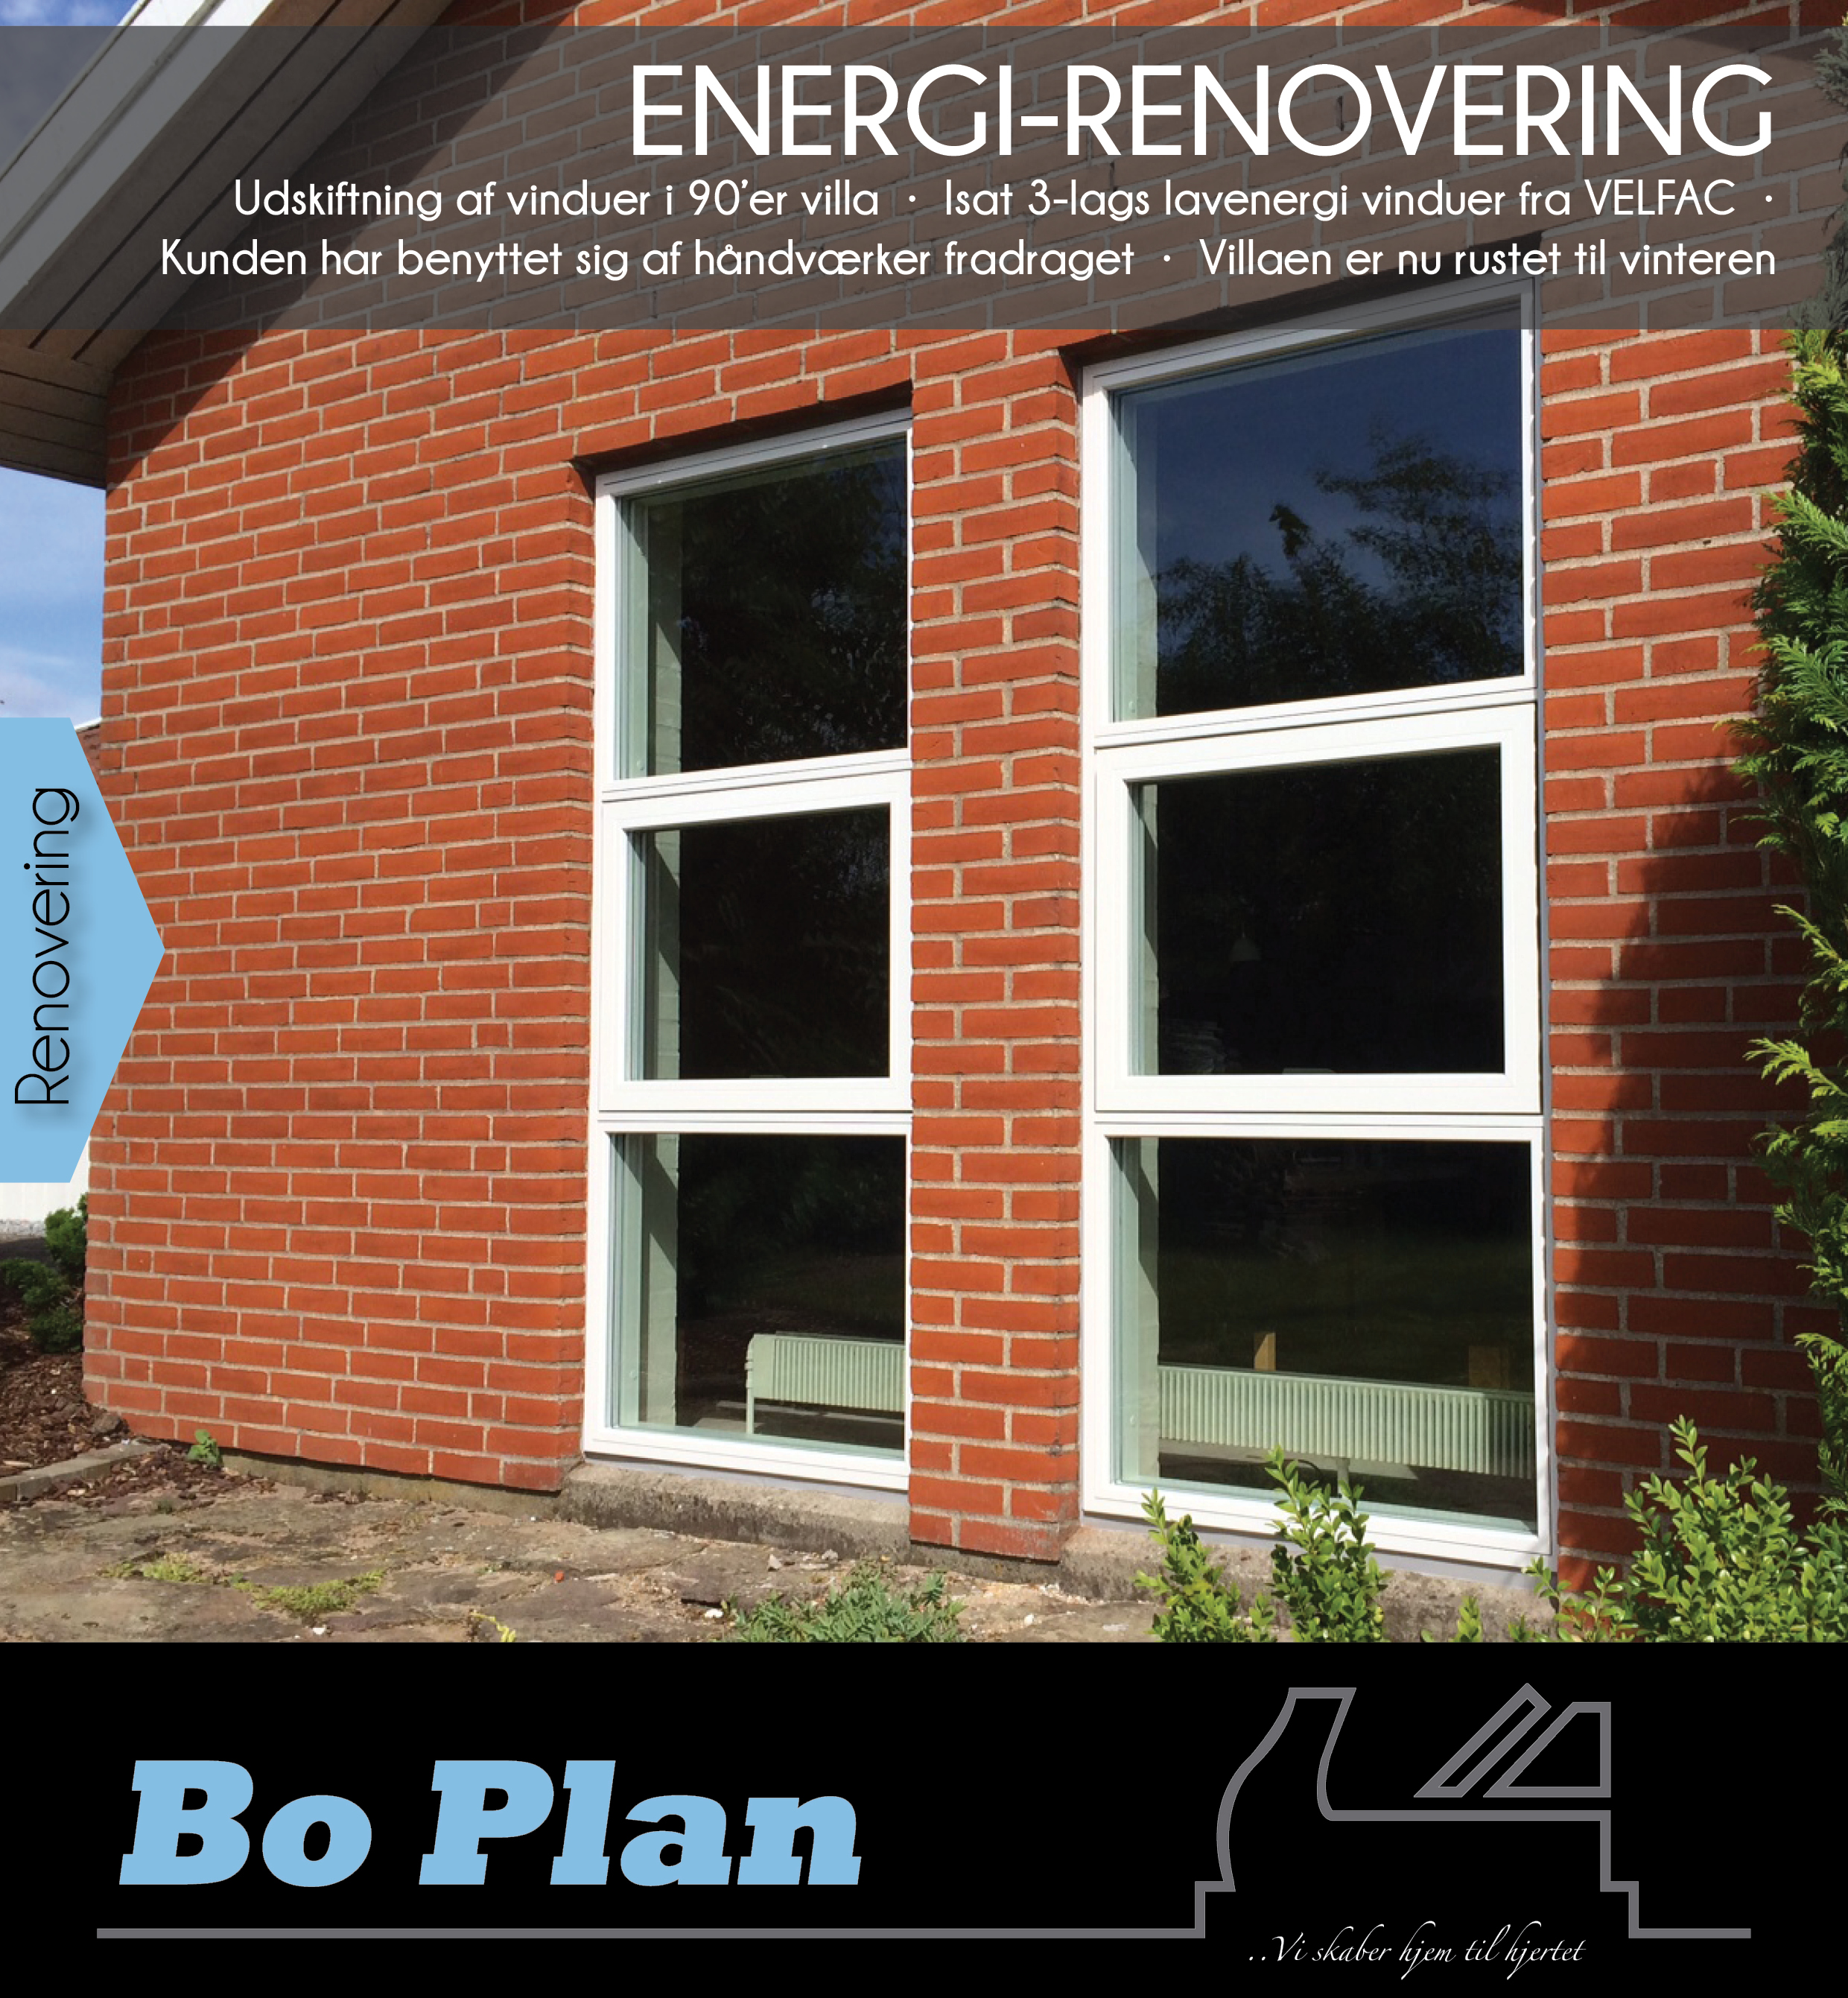 Bo Plan_projekt_post_renovering_energi_juni2014